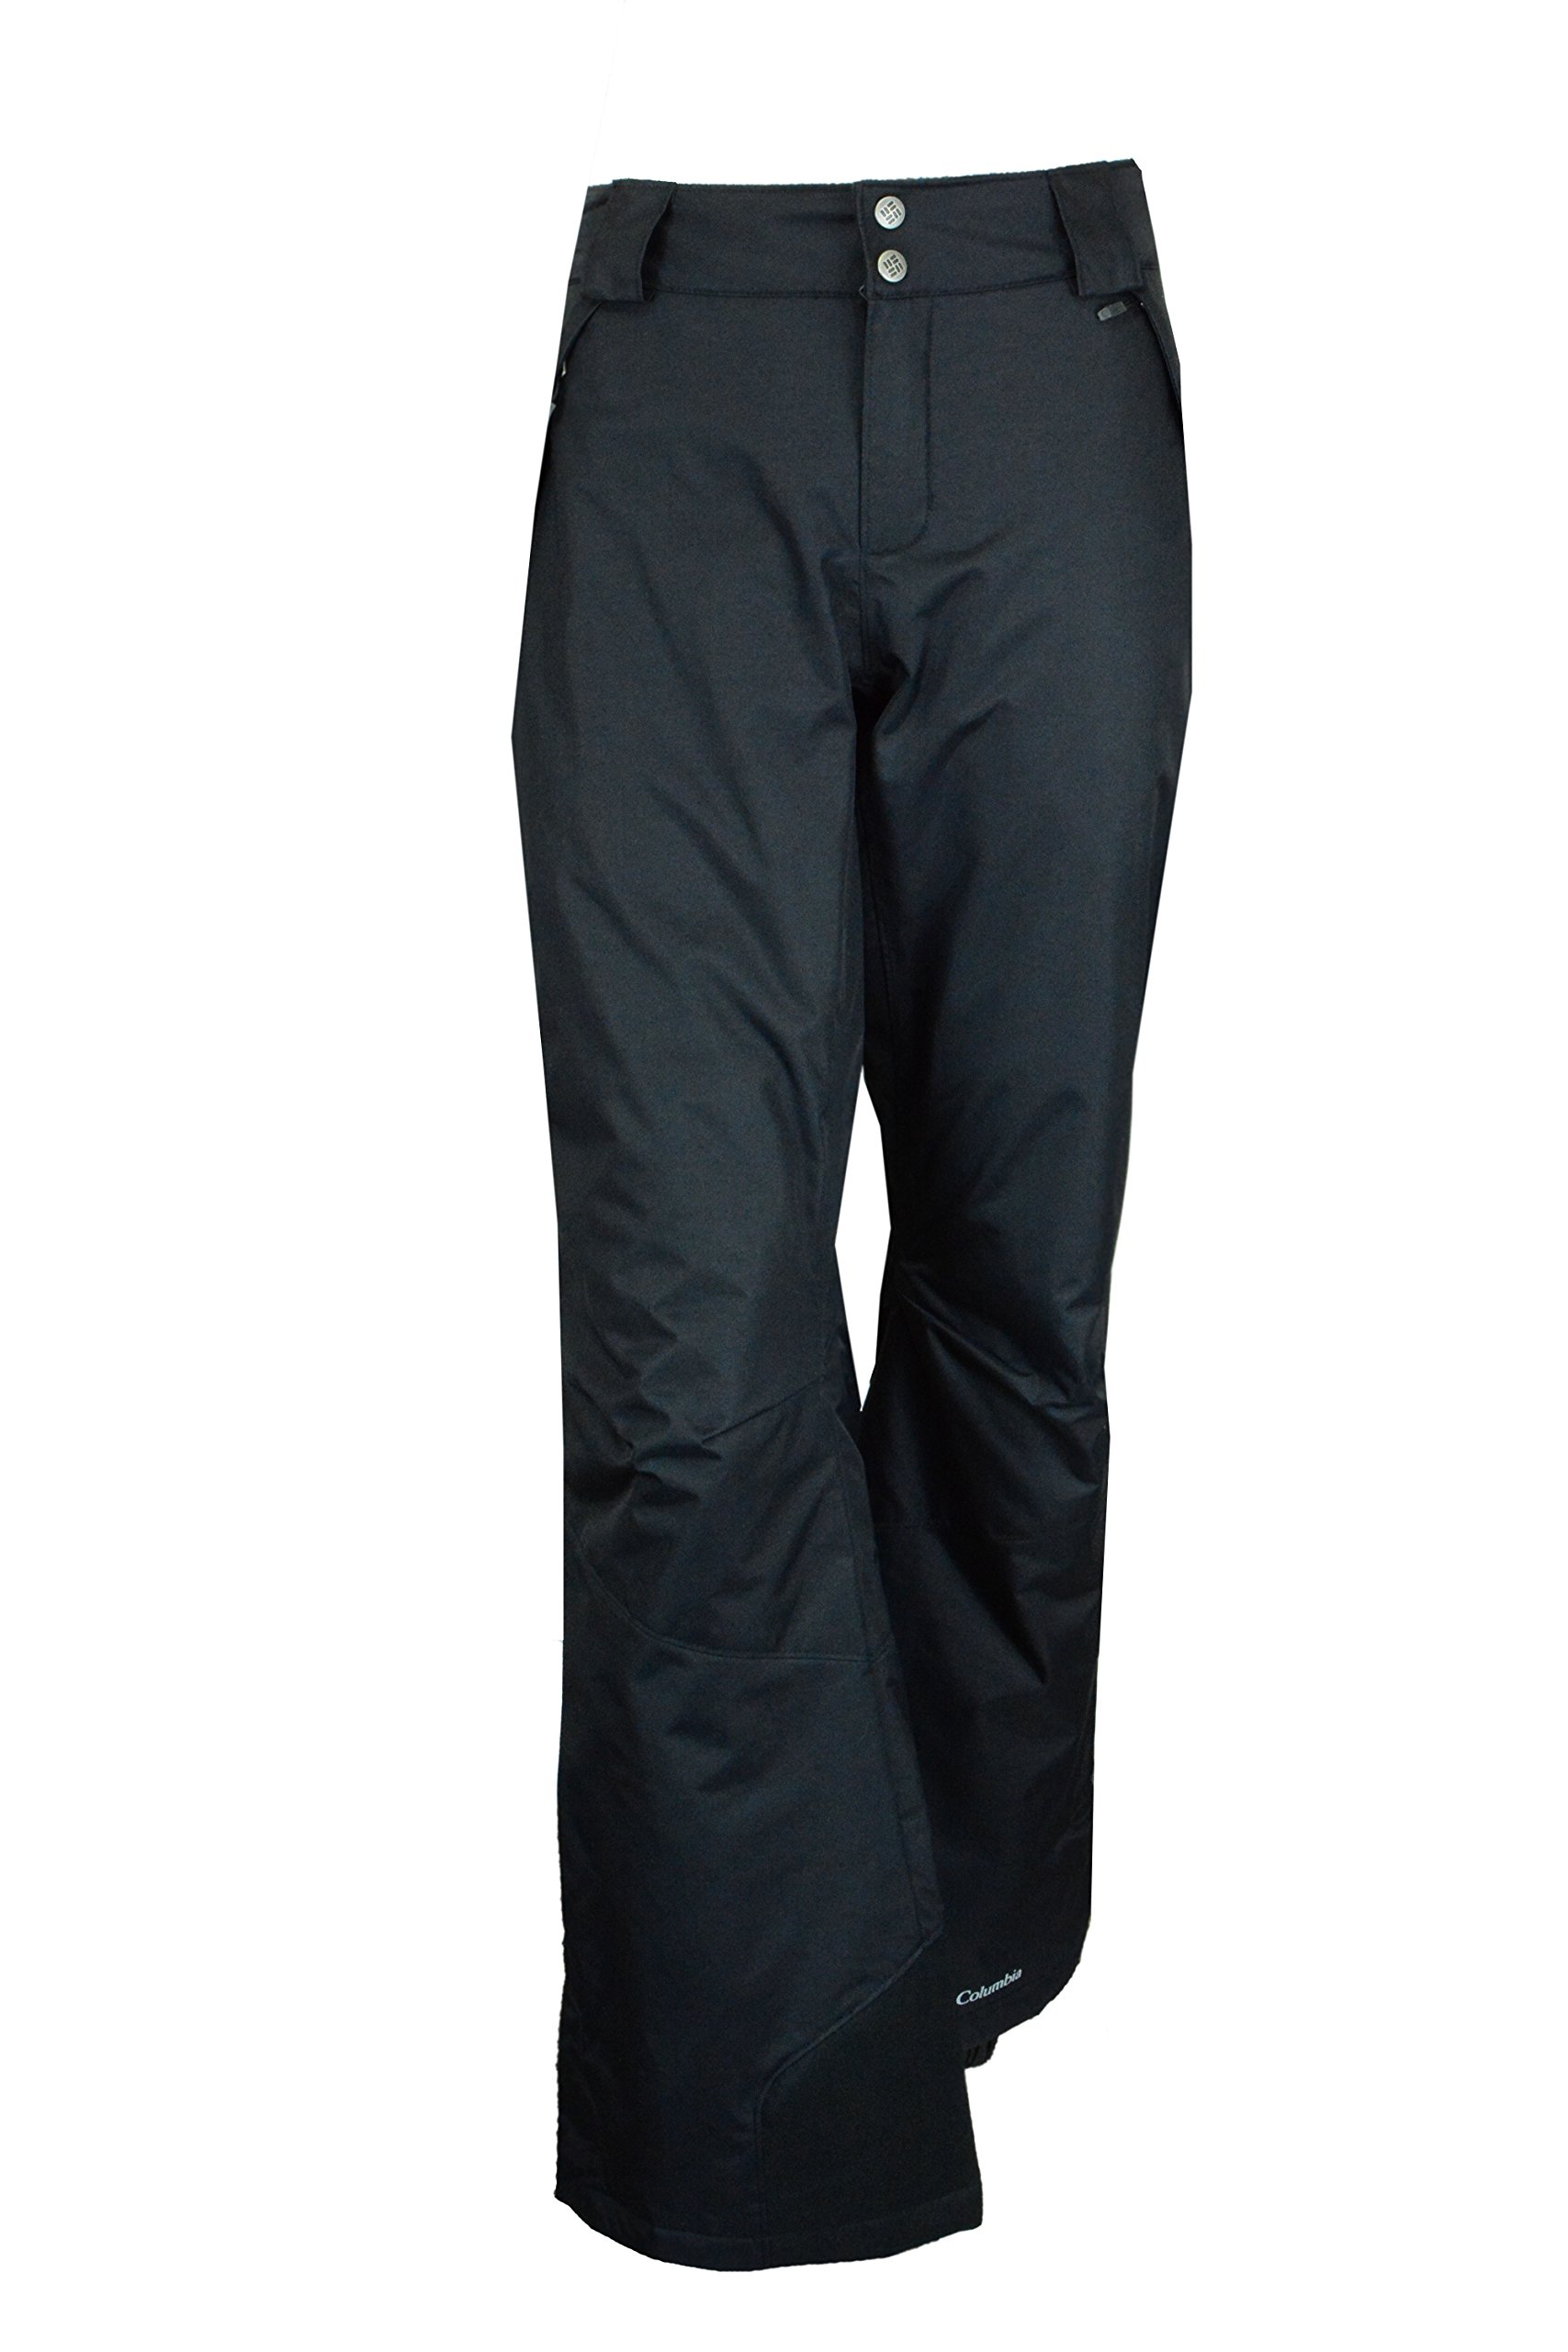 Columbia Arctic Trip Omni-Heat Womens Snow Ski Pants (XL)